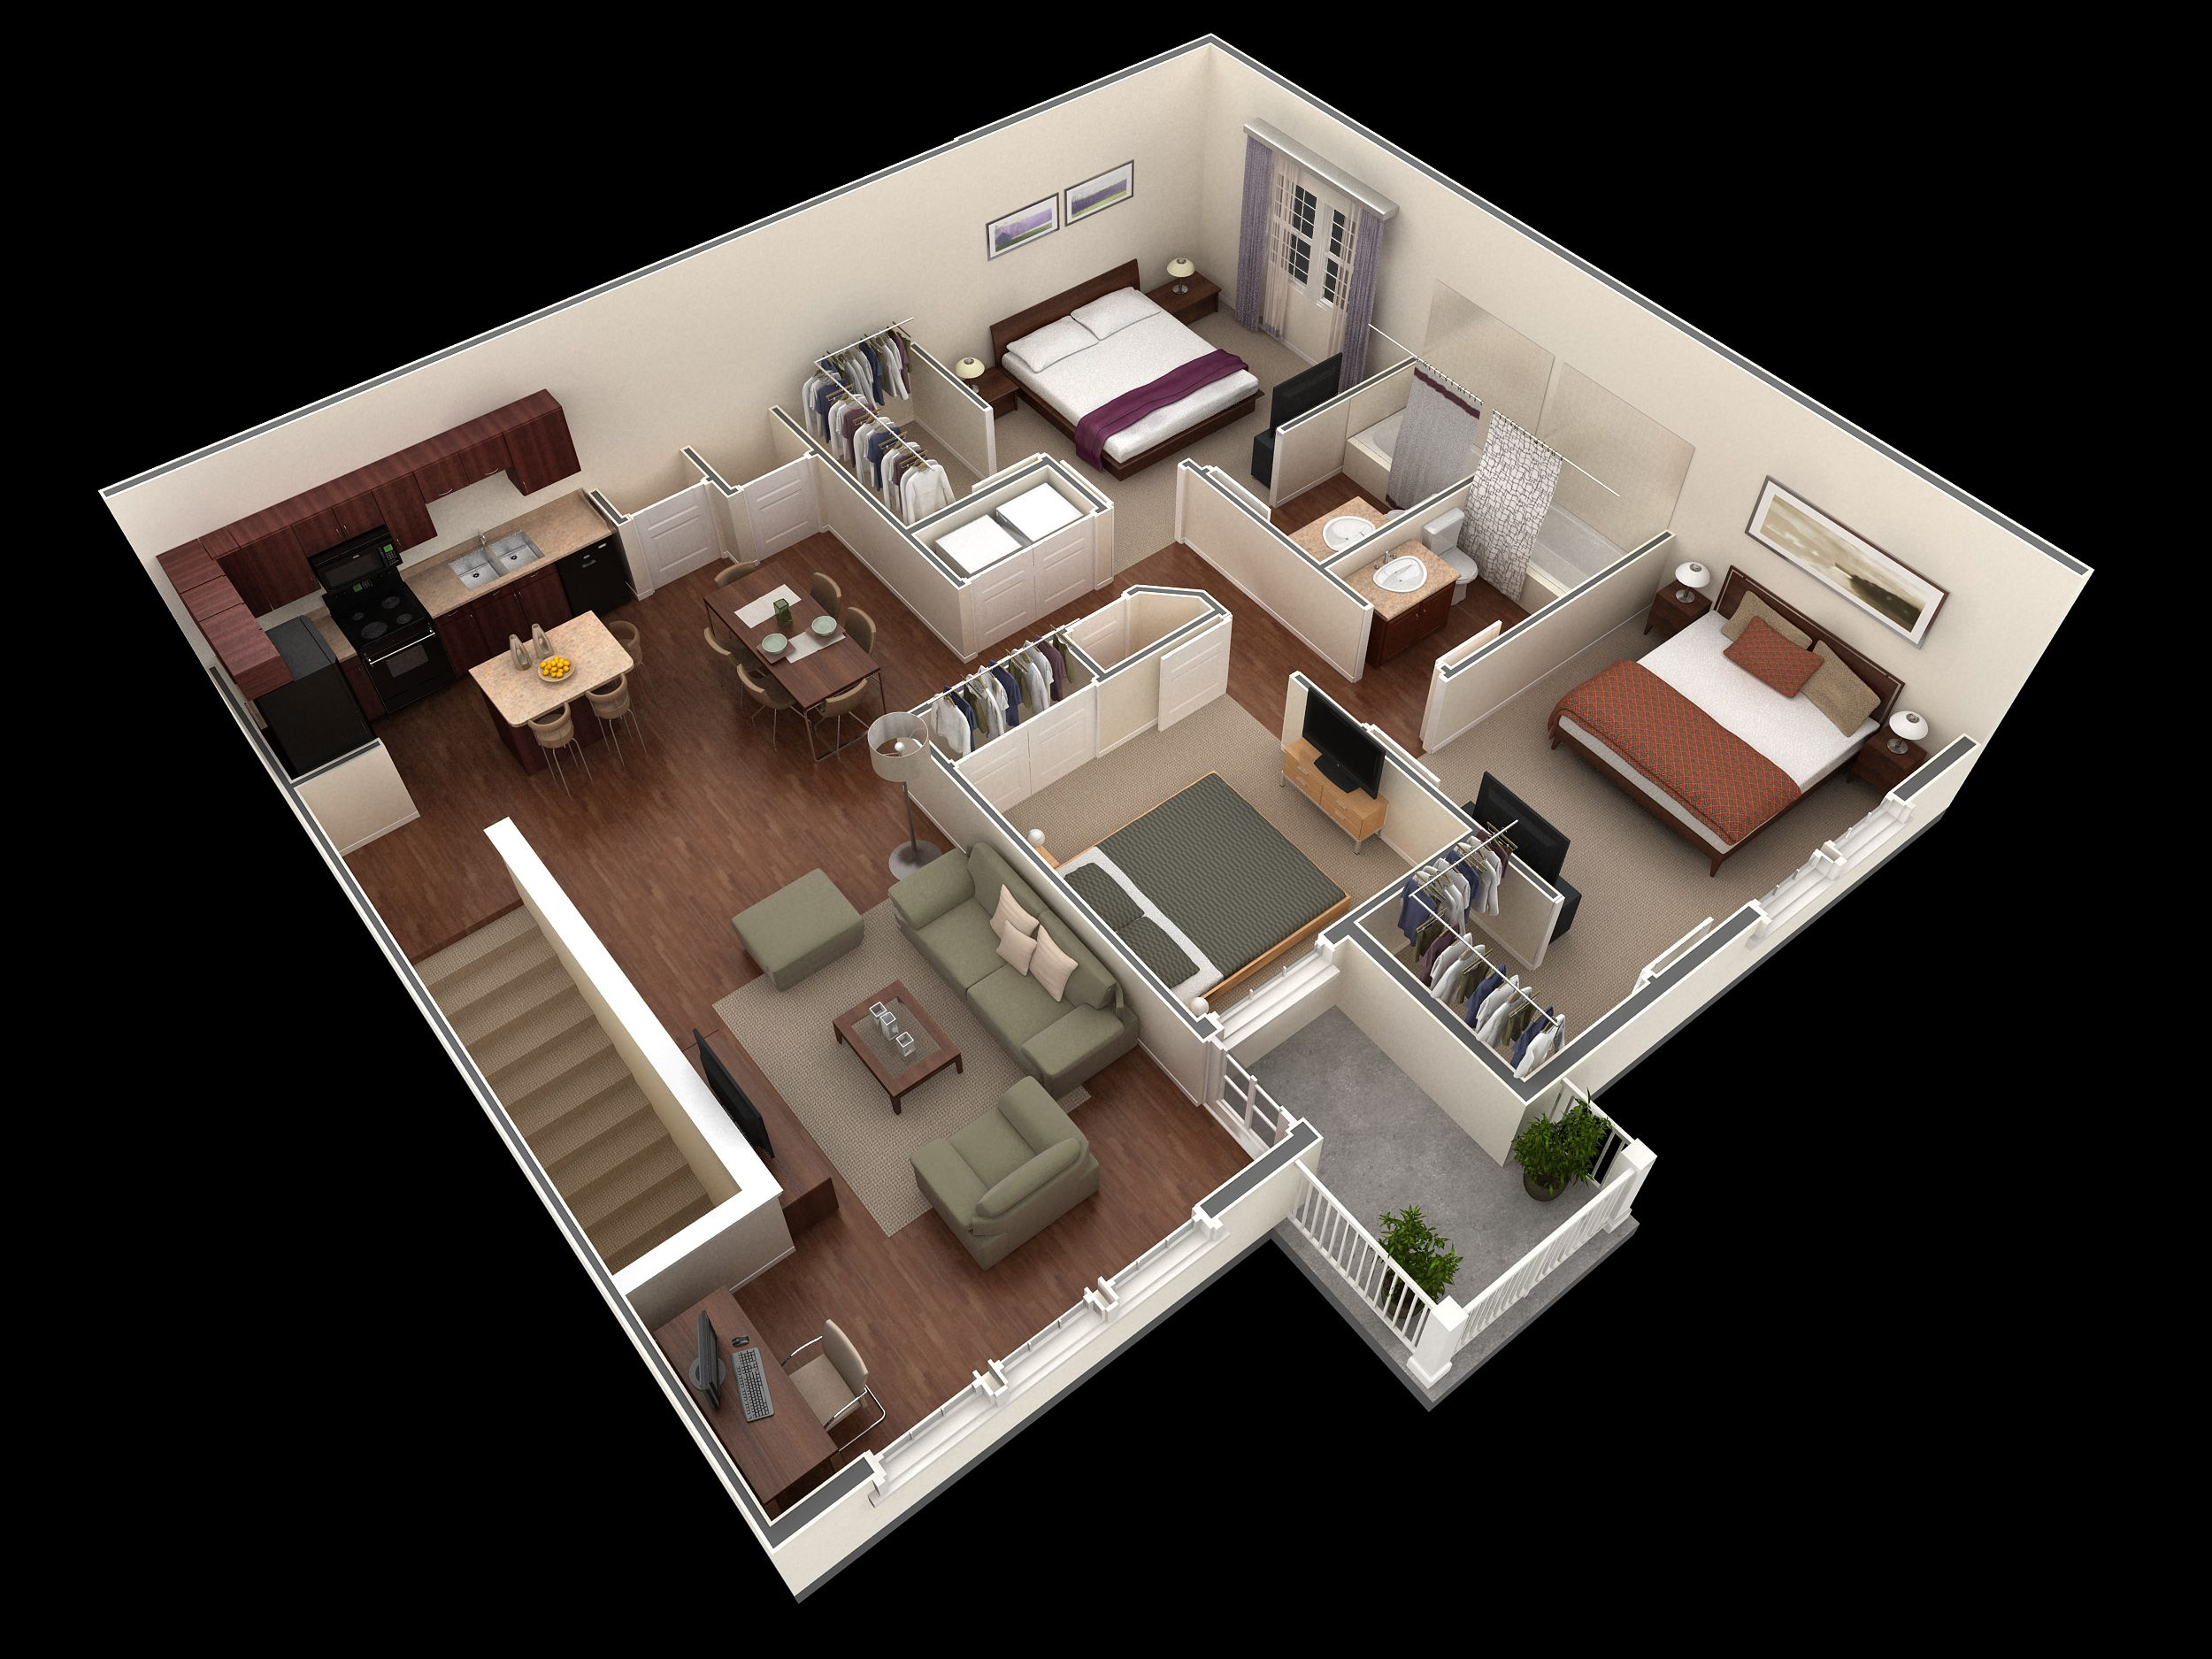 3 Bedroom 2 Bath 1378 Sf Apartment At Springs At Legacy Commons Apartments In Omaha Ne The Apartment Comes With 3 L House Plans 3d House Plans House Layouts